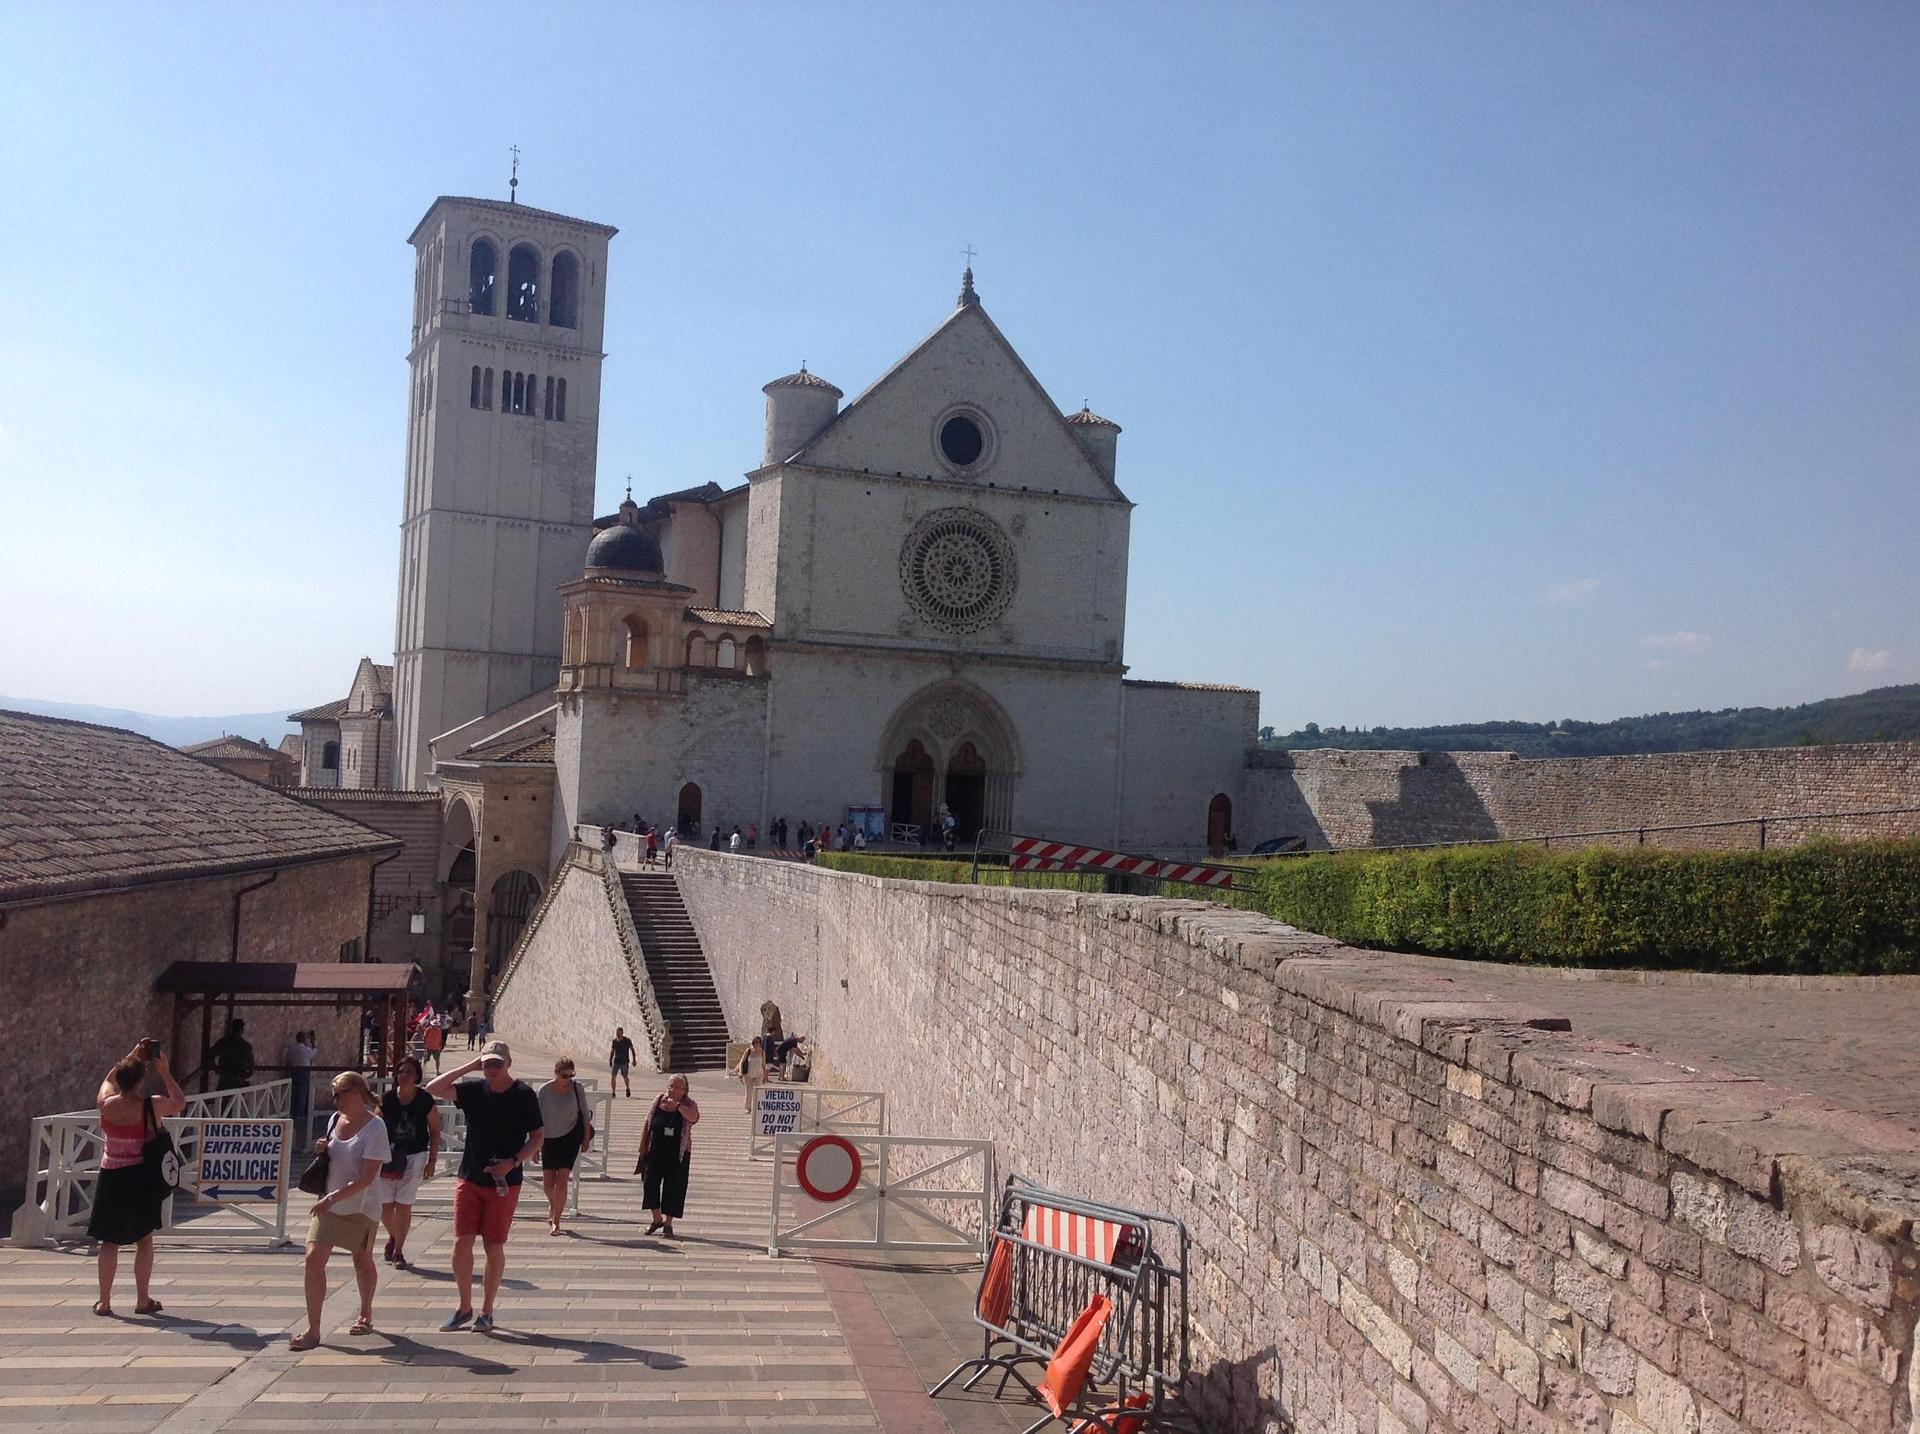 International Travel - Assisi, Italy